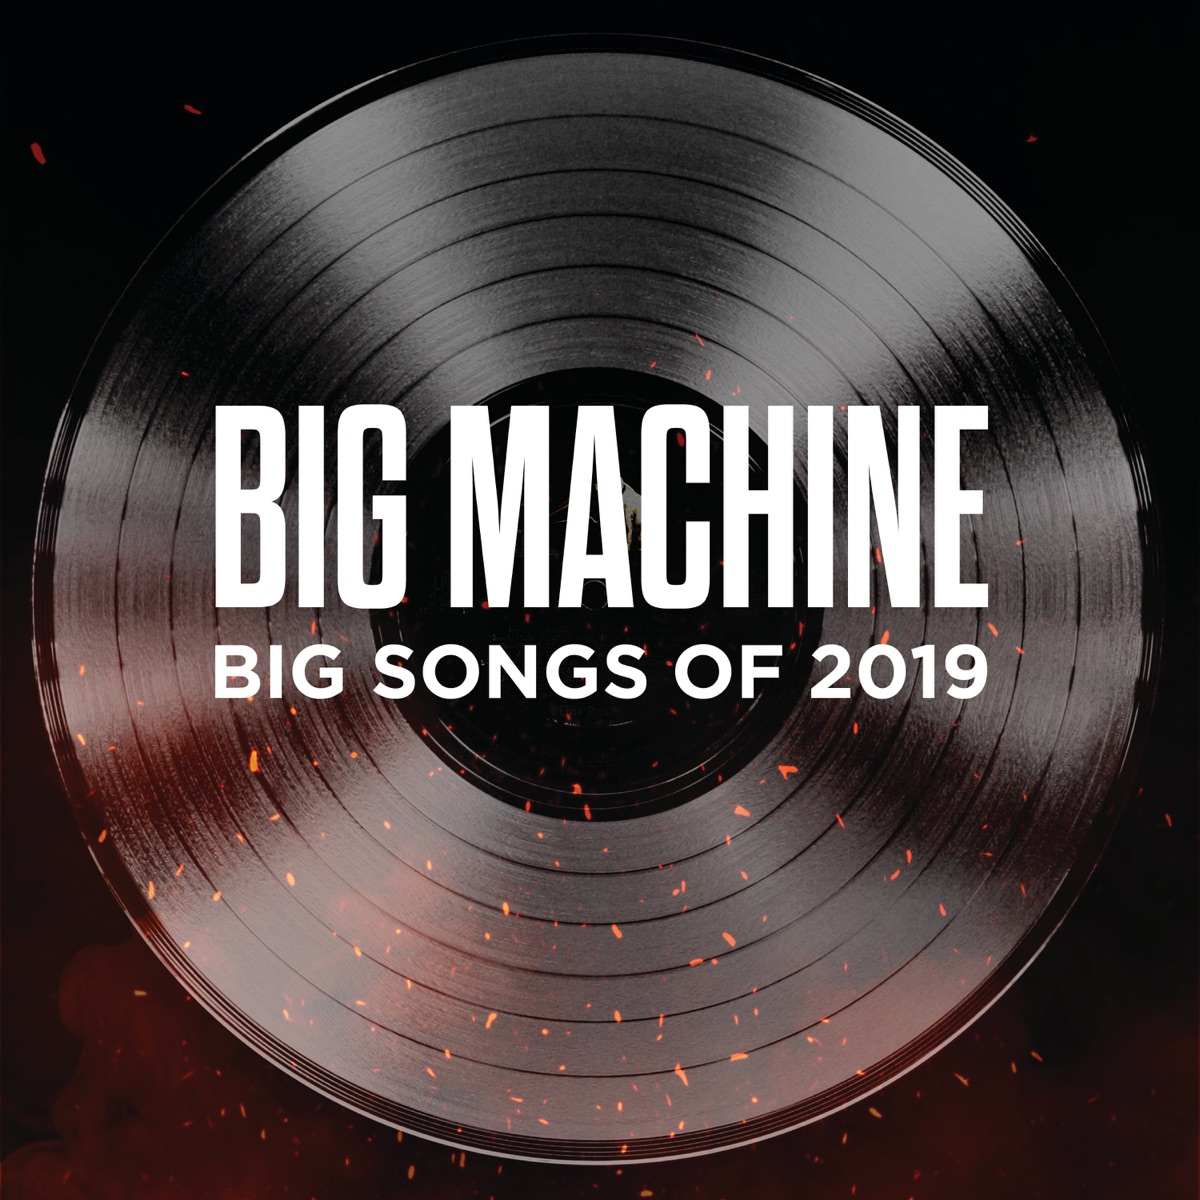 Big Machine Big Songs of 2019 Various Artists CD cover